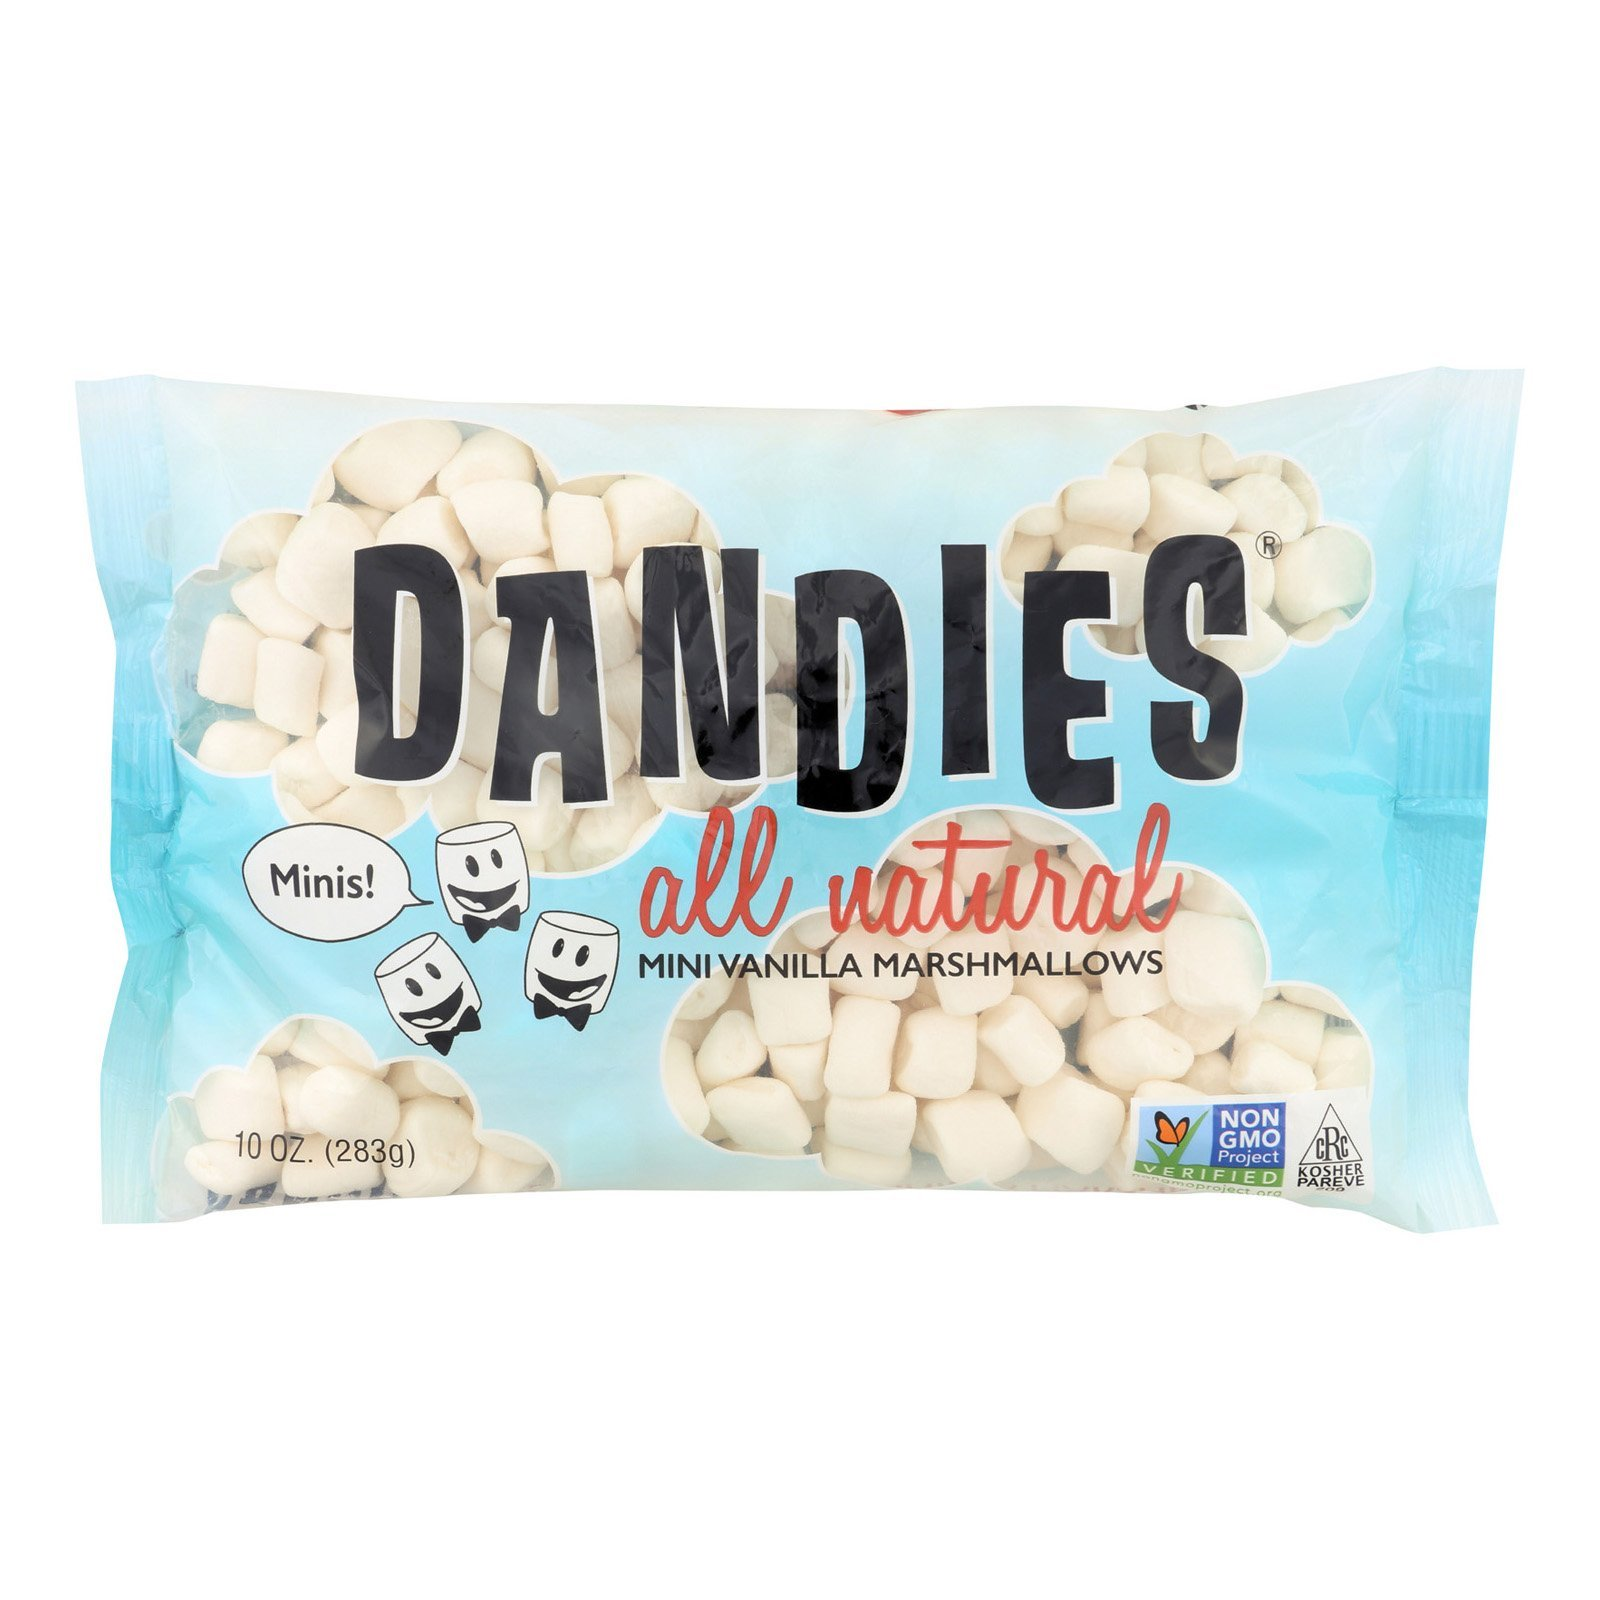 Dandies Vanilla Mini Marshmallow, 10 Ounce - 12 per case. by Dandies